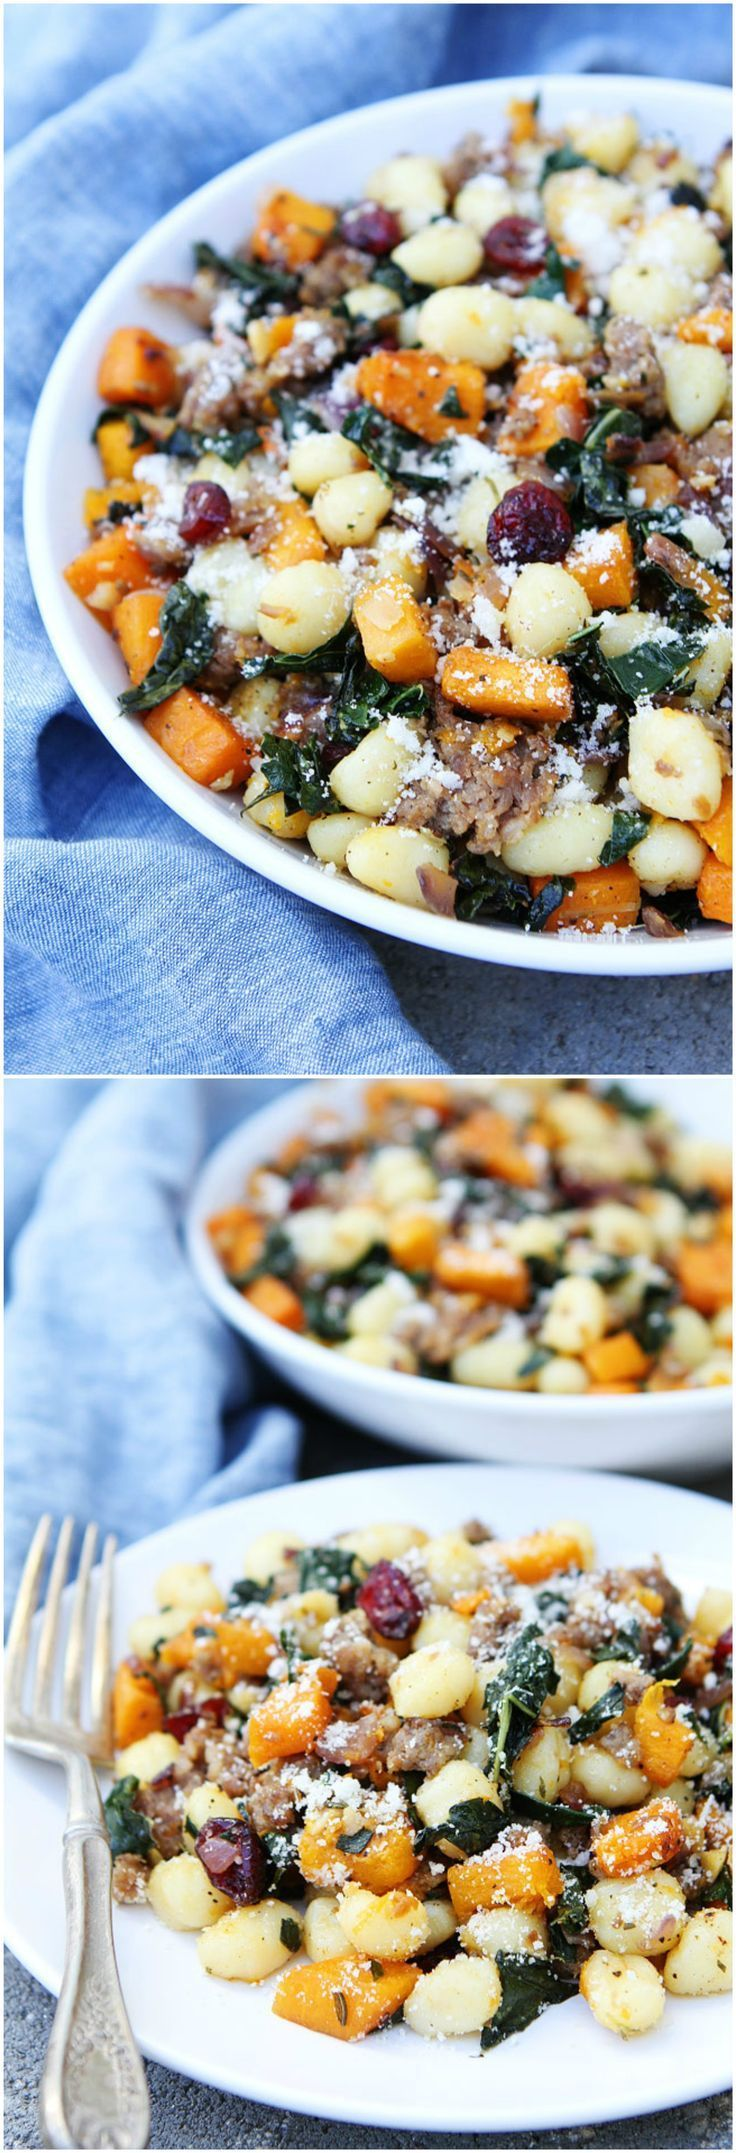 Butternut Squash, Sausage, and Kale Gnocchi Recipe on twopeasandtheirpo... This quick and easy gnocchi dish makes a great fall meal.